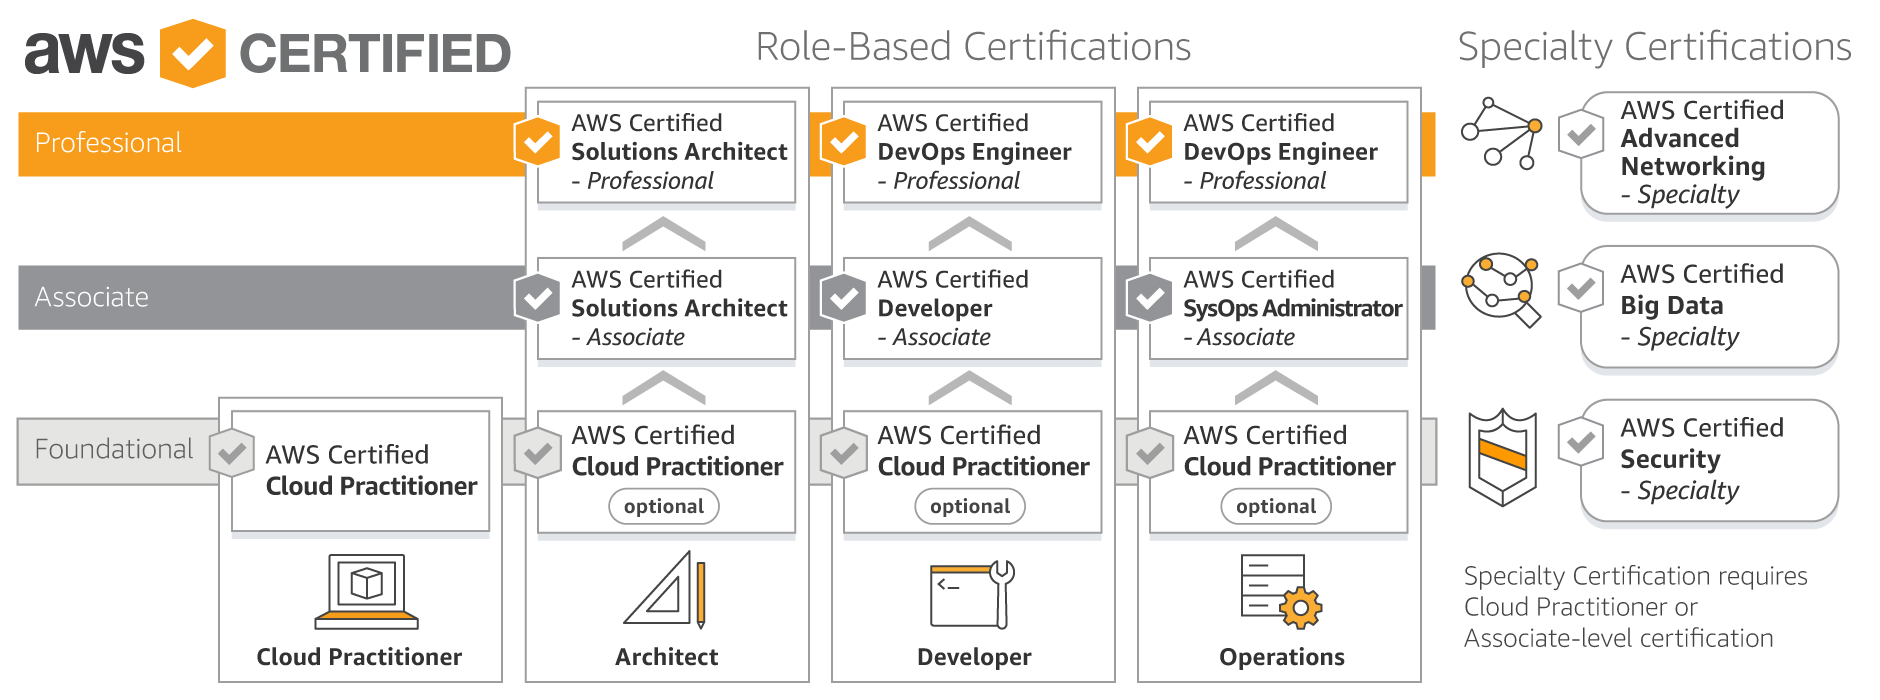 Aws certification aws cloud computing certification program certification roadmap awscertificationroadmapapril2018 malvernweather Choice Image